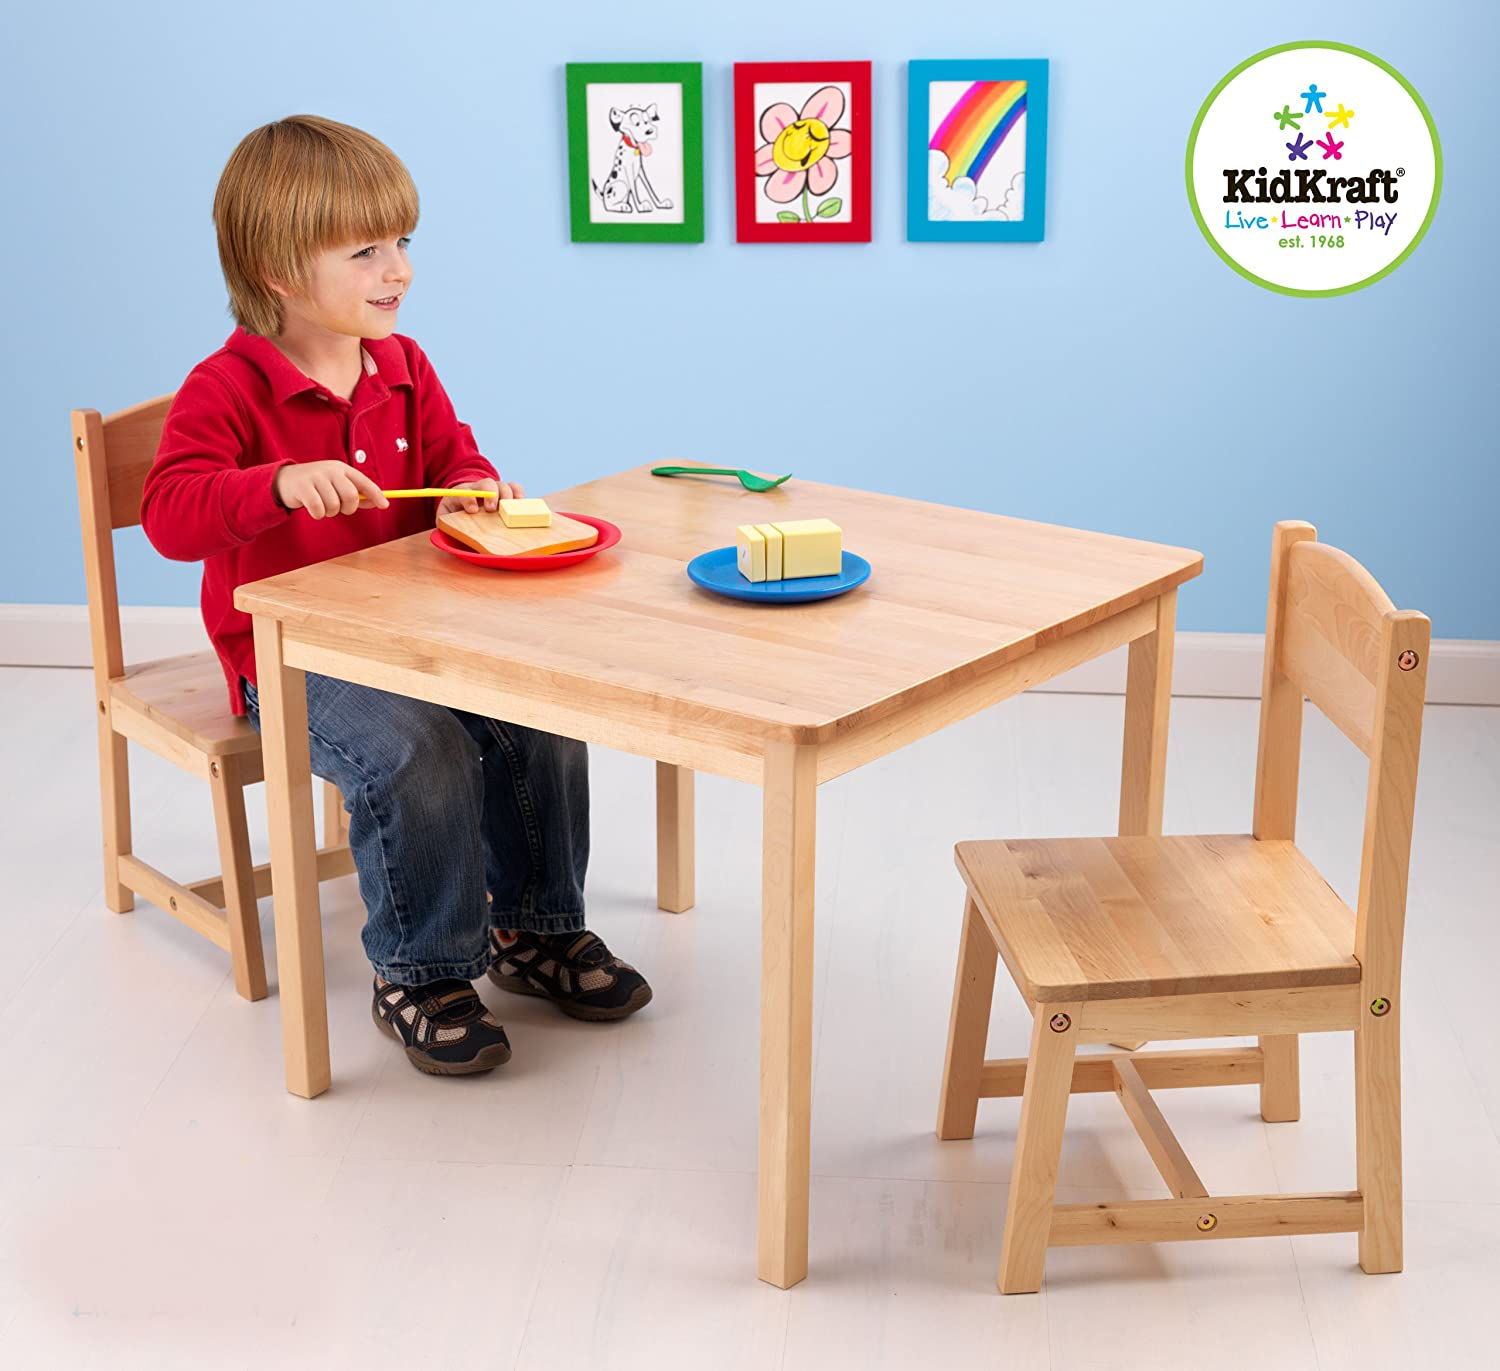 Amazon KidKraft Aspen Table and Chair Set Natural Toys & Games